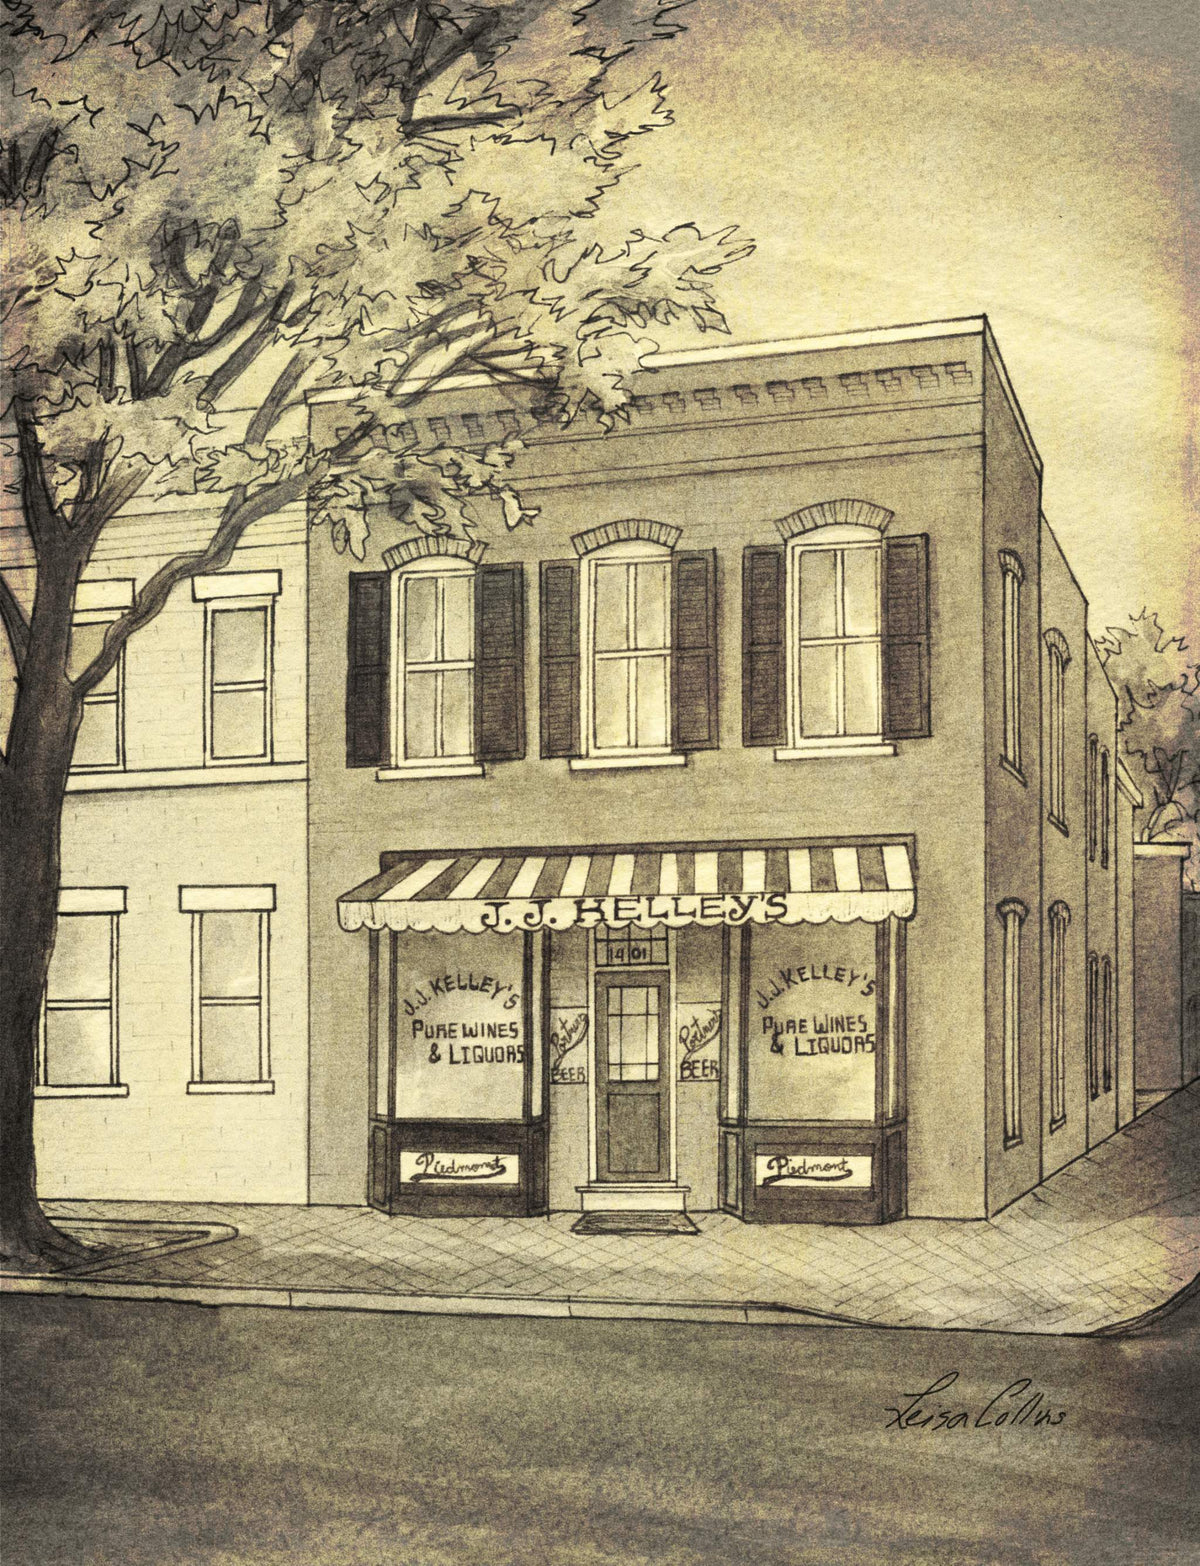 leisa-collins-art-shop - King St, Old Town Alexandria, VA Vintage Street Scene - Pen and sepia wash